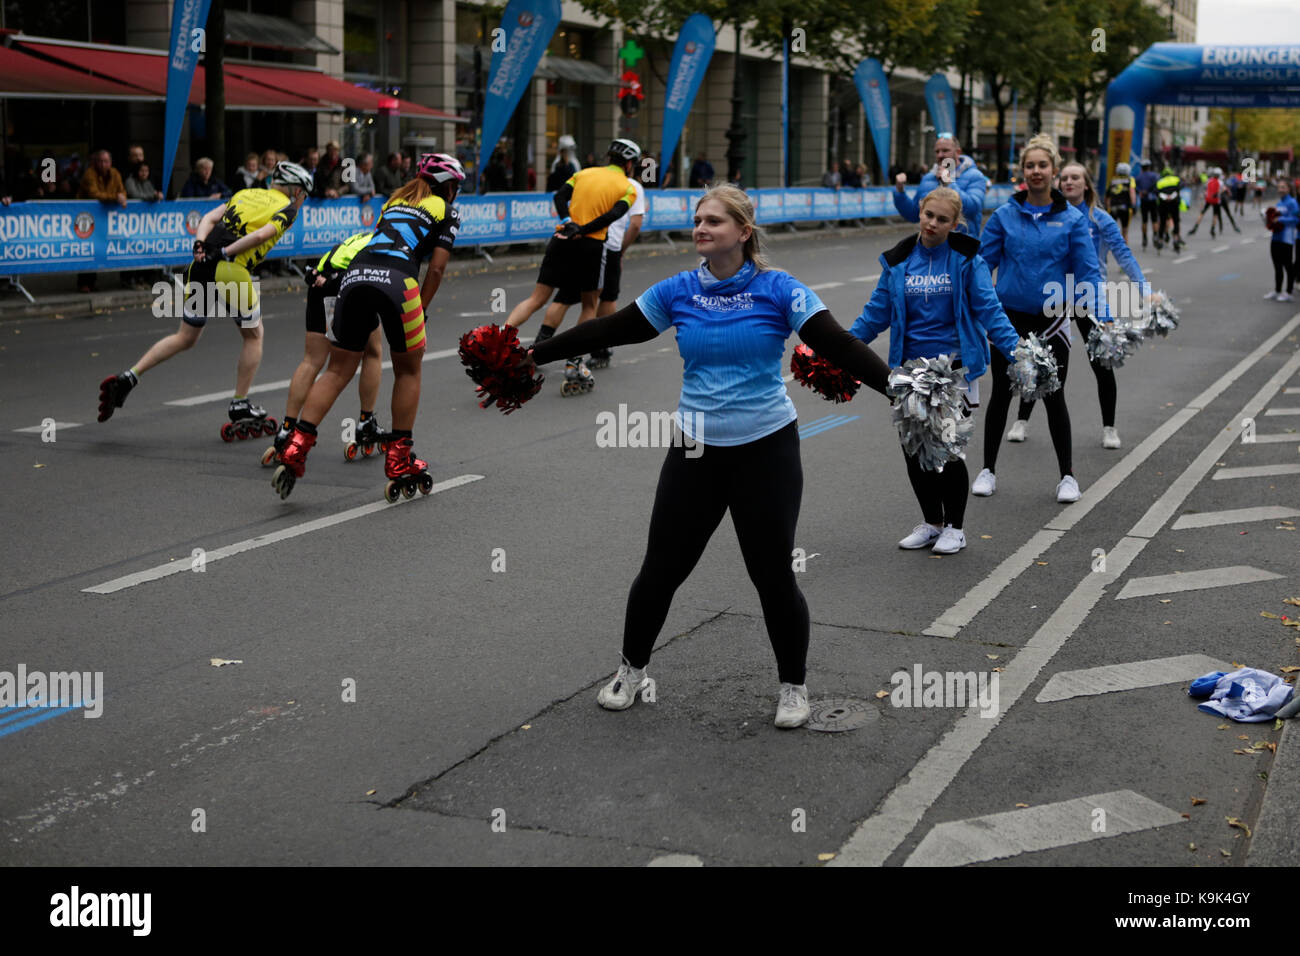 Berlin, Germany. 23rd September 2017. Cheerleaders cheer on the skaters for the last kilometre of the race. Over 5,500 skater took part in the 2017 BMW Berlin Marathon Inline skating race, a day ahead of the  Marathon race. Bart Swings from Belgium won the race in 58:42 for the 5th year in a row. Credit: Michael Debets/Alamy Live News Stock Photo